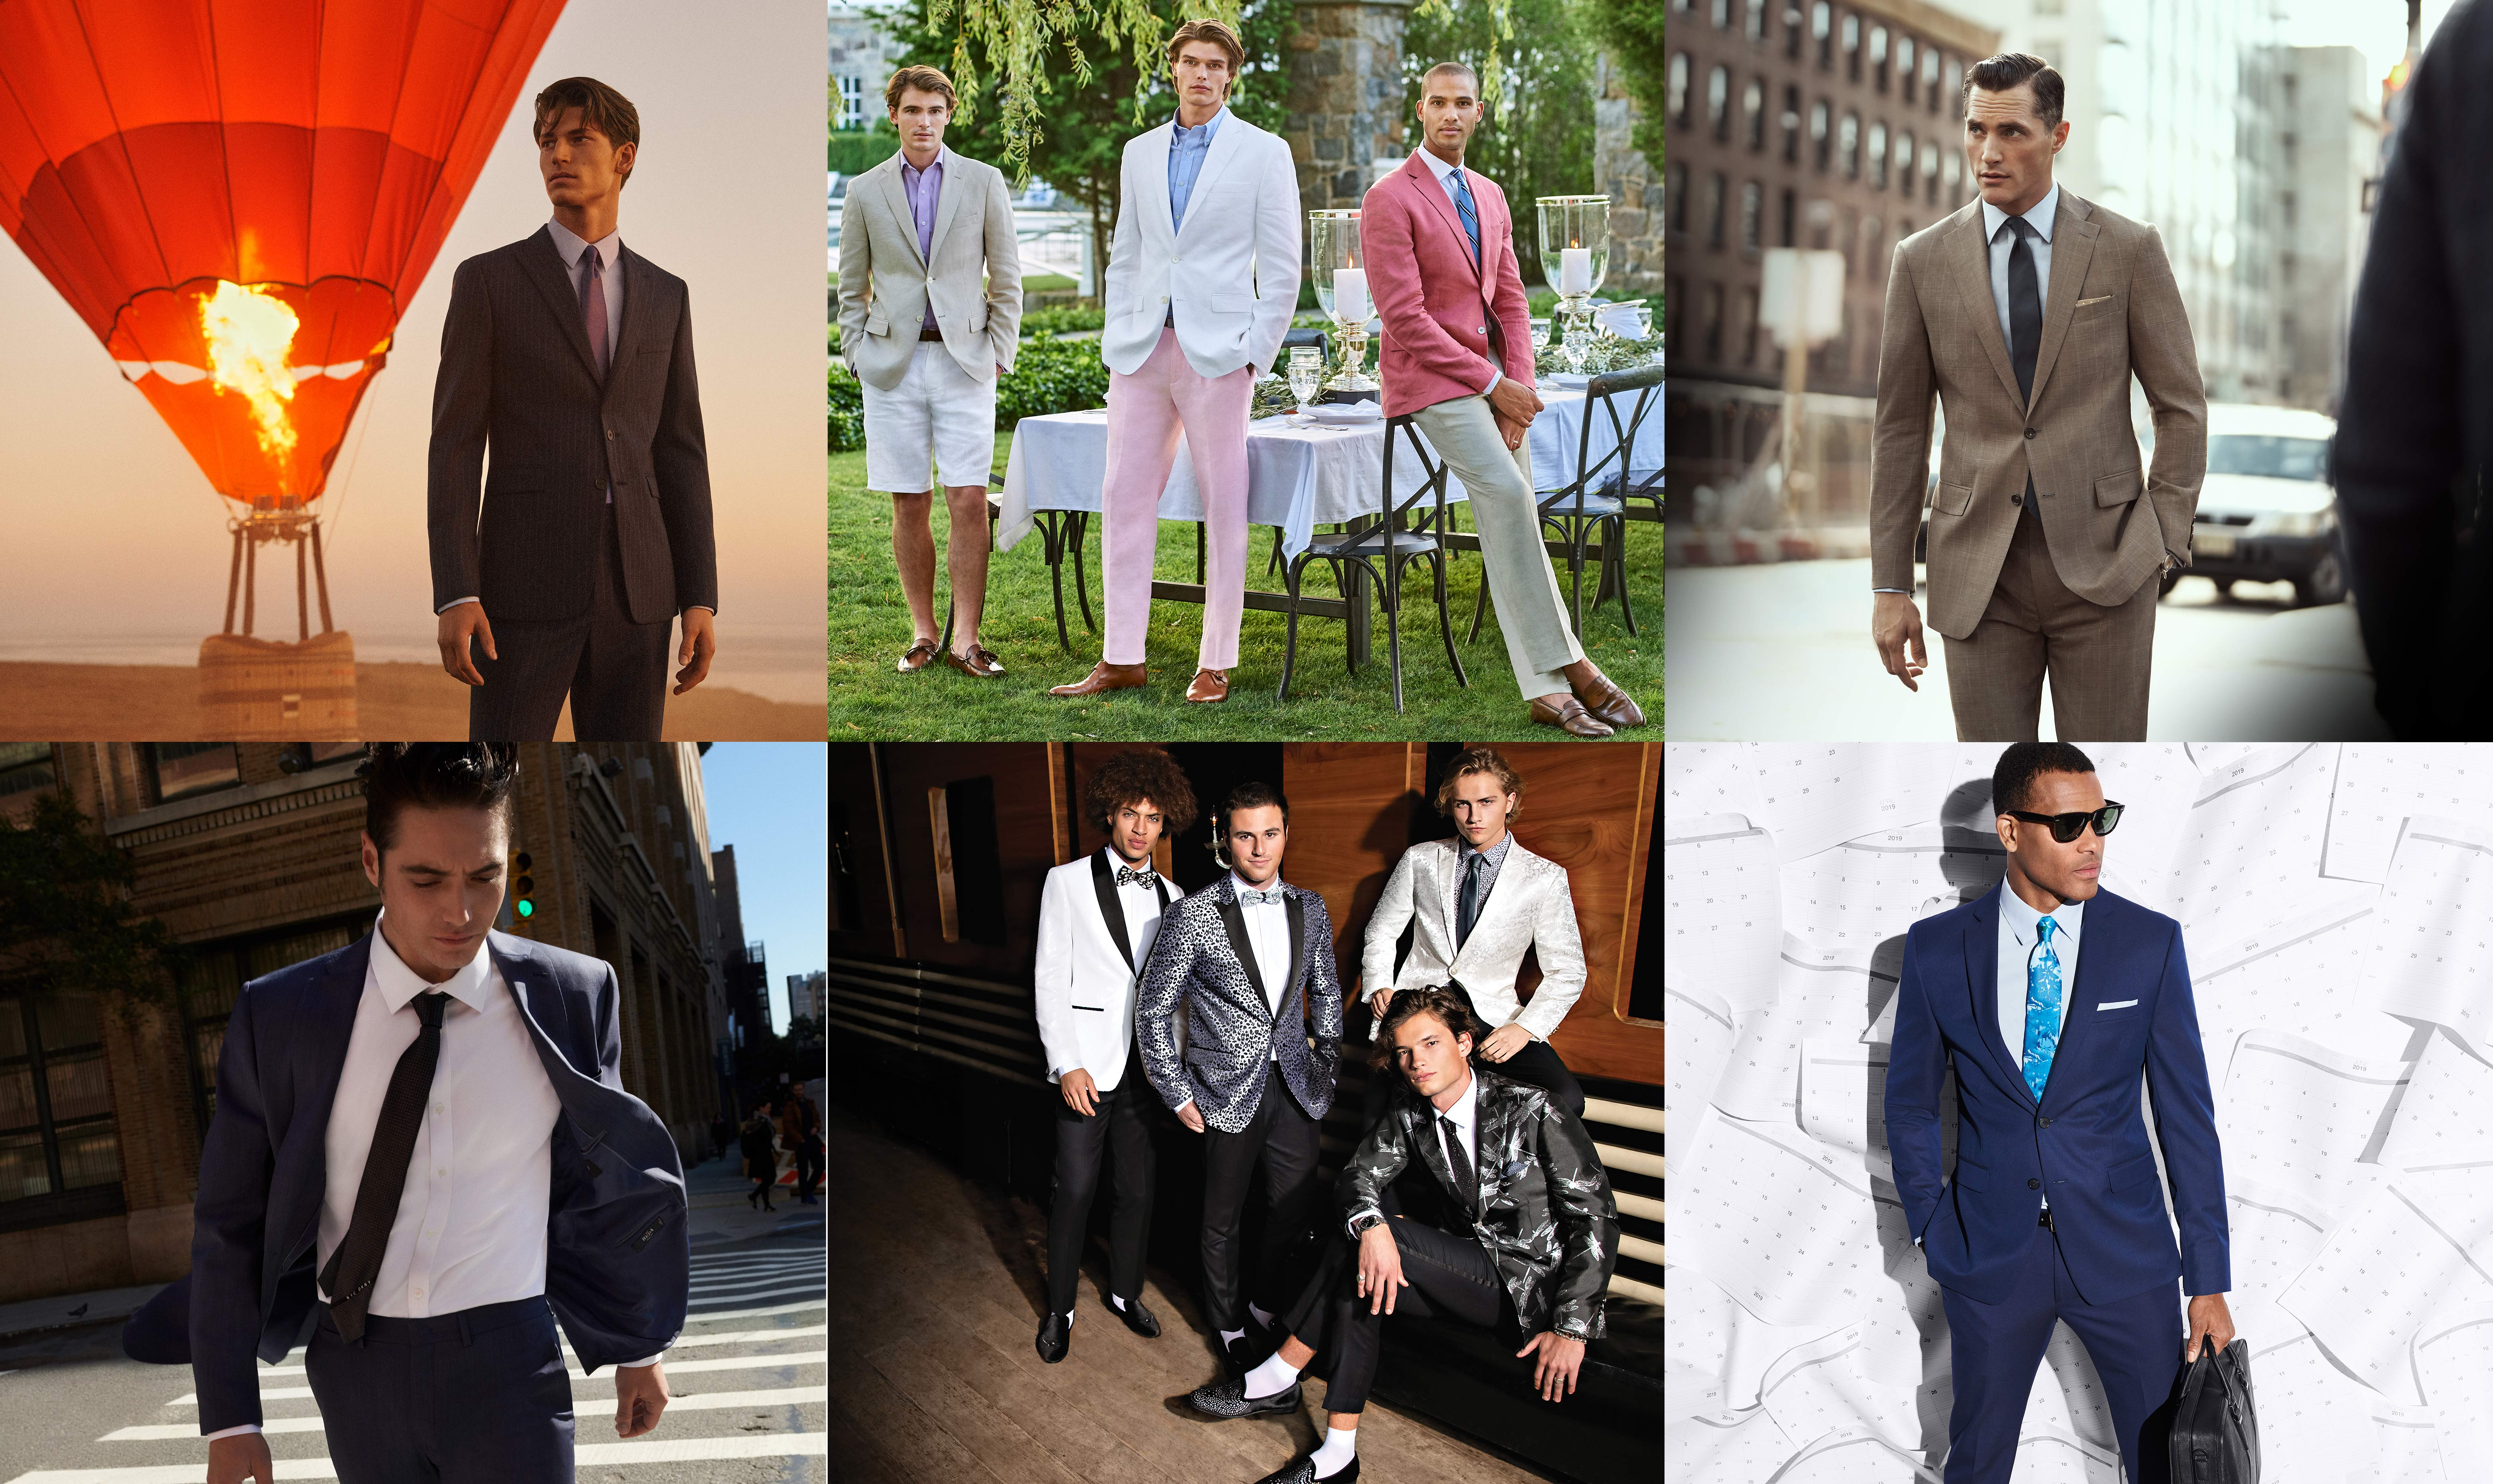 e9555faff10faf The Peerless family of products includes men's and boy's tailored suits,  suit separates, sport coats, tuxedos, and trousers.